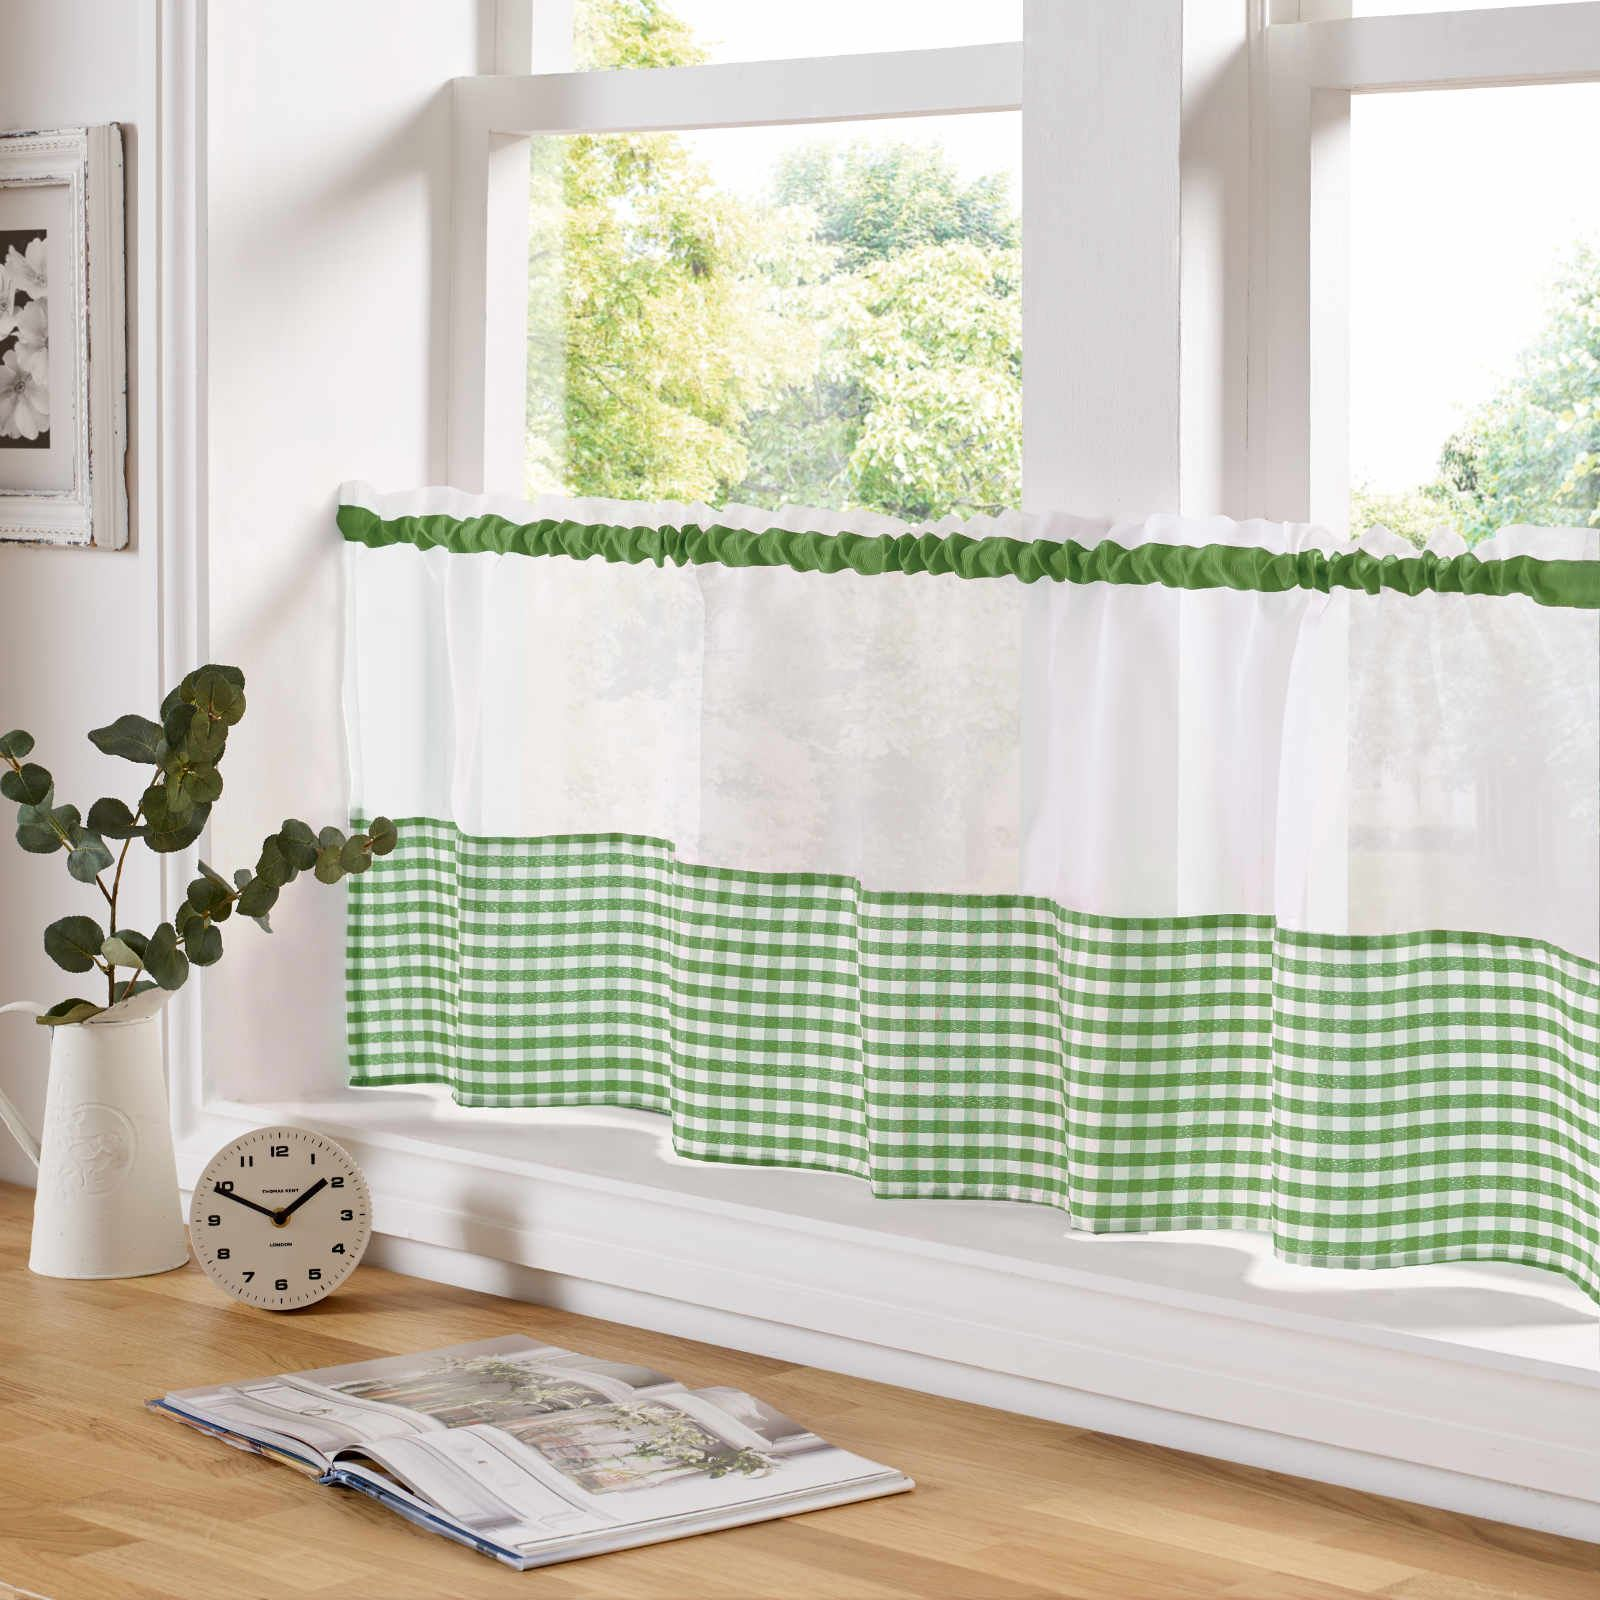 COUNTRY STYLE KITCHEN GINGHAM CURTAIN PAIR WINDOW DRAPES